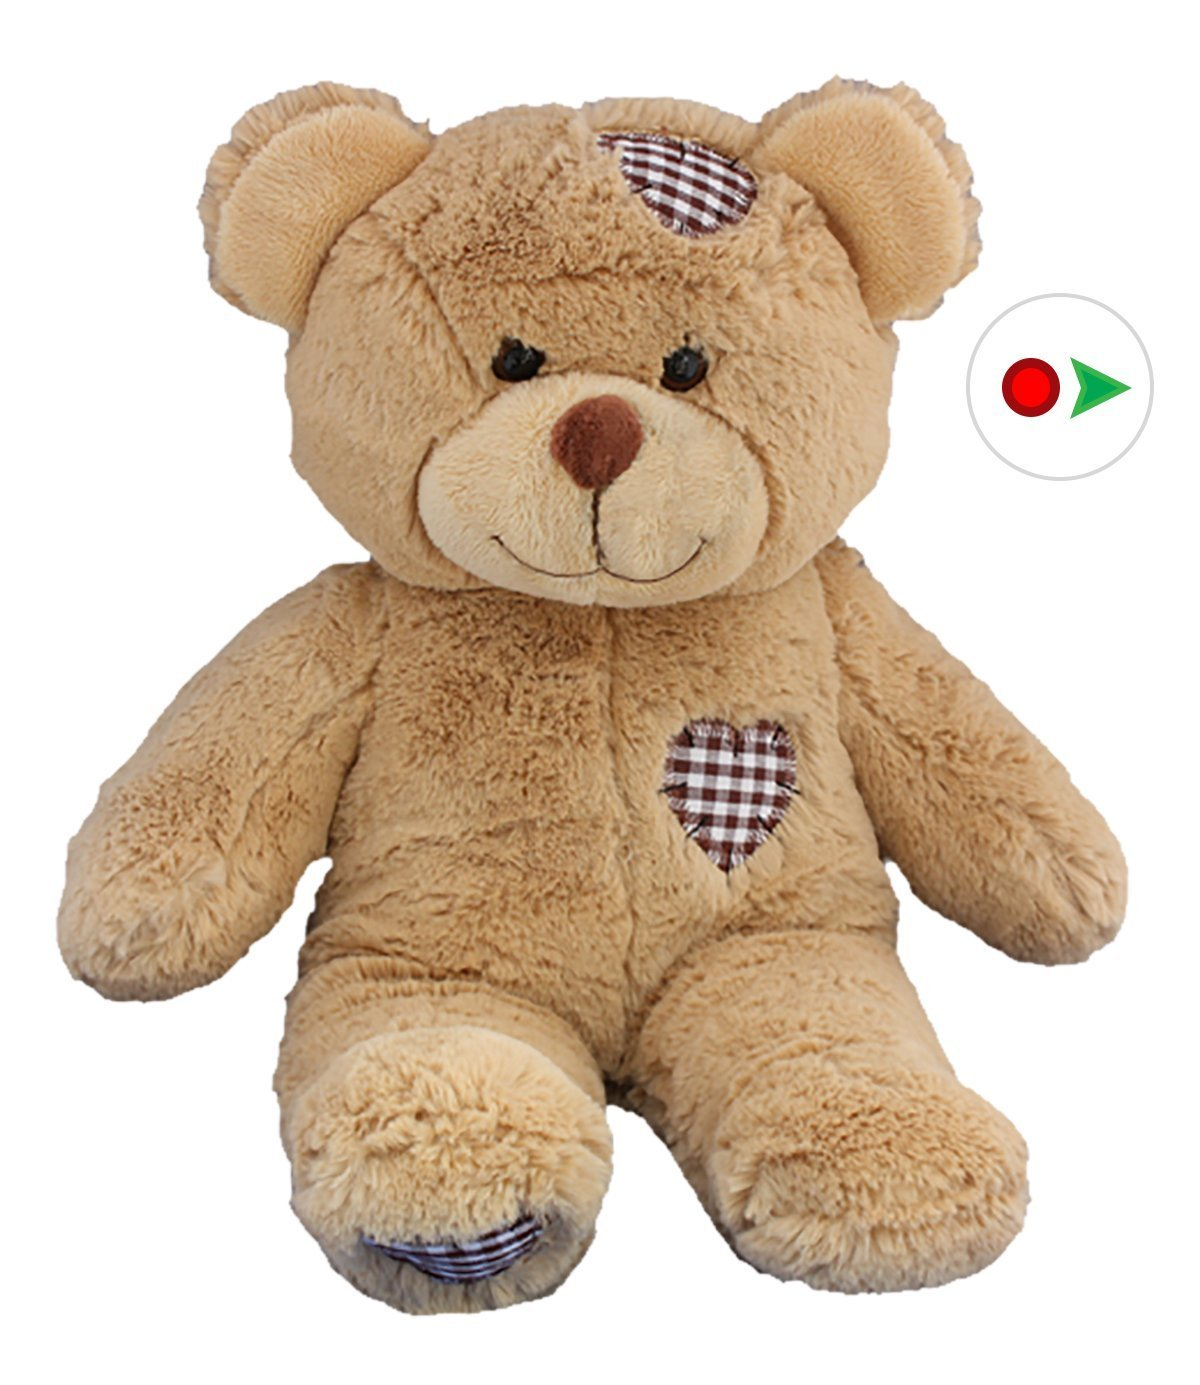 Record Your Own Plush 16 inch Brown Patches Teddy Bear Ready To Love In A Few Easy Steps by Teddy Mountain